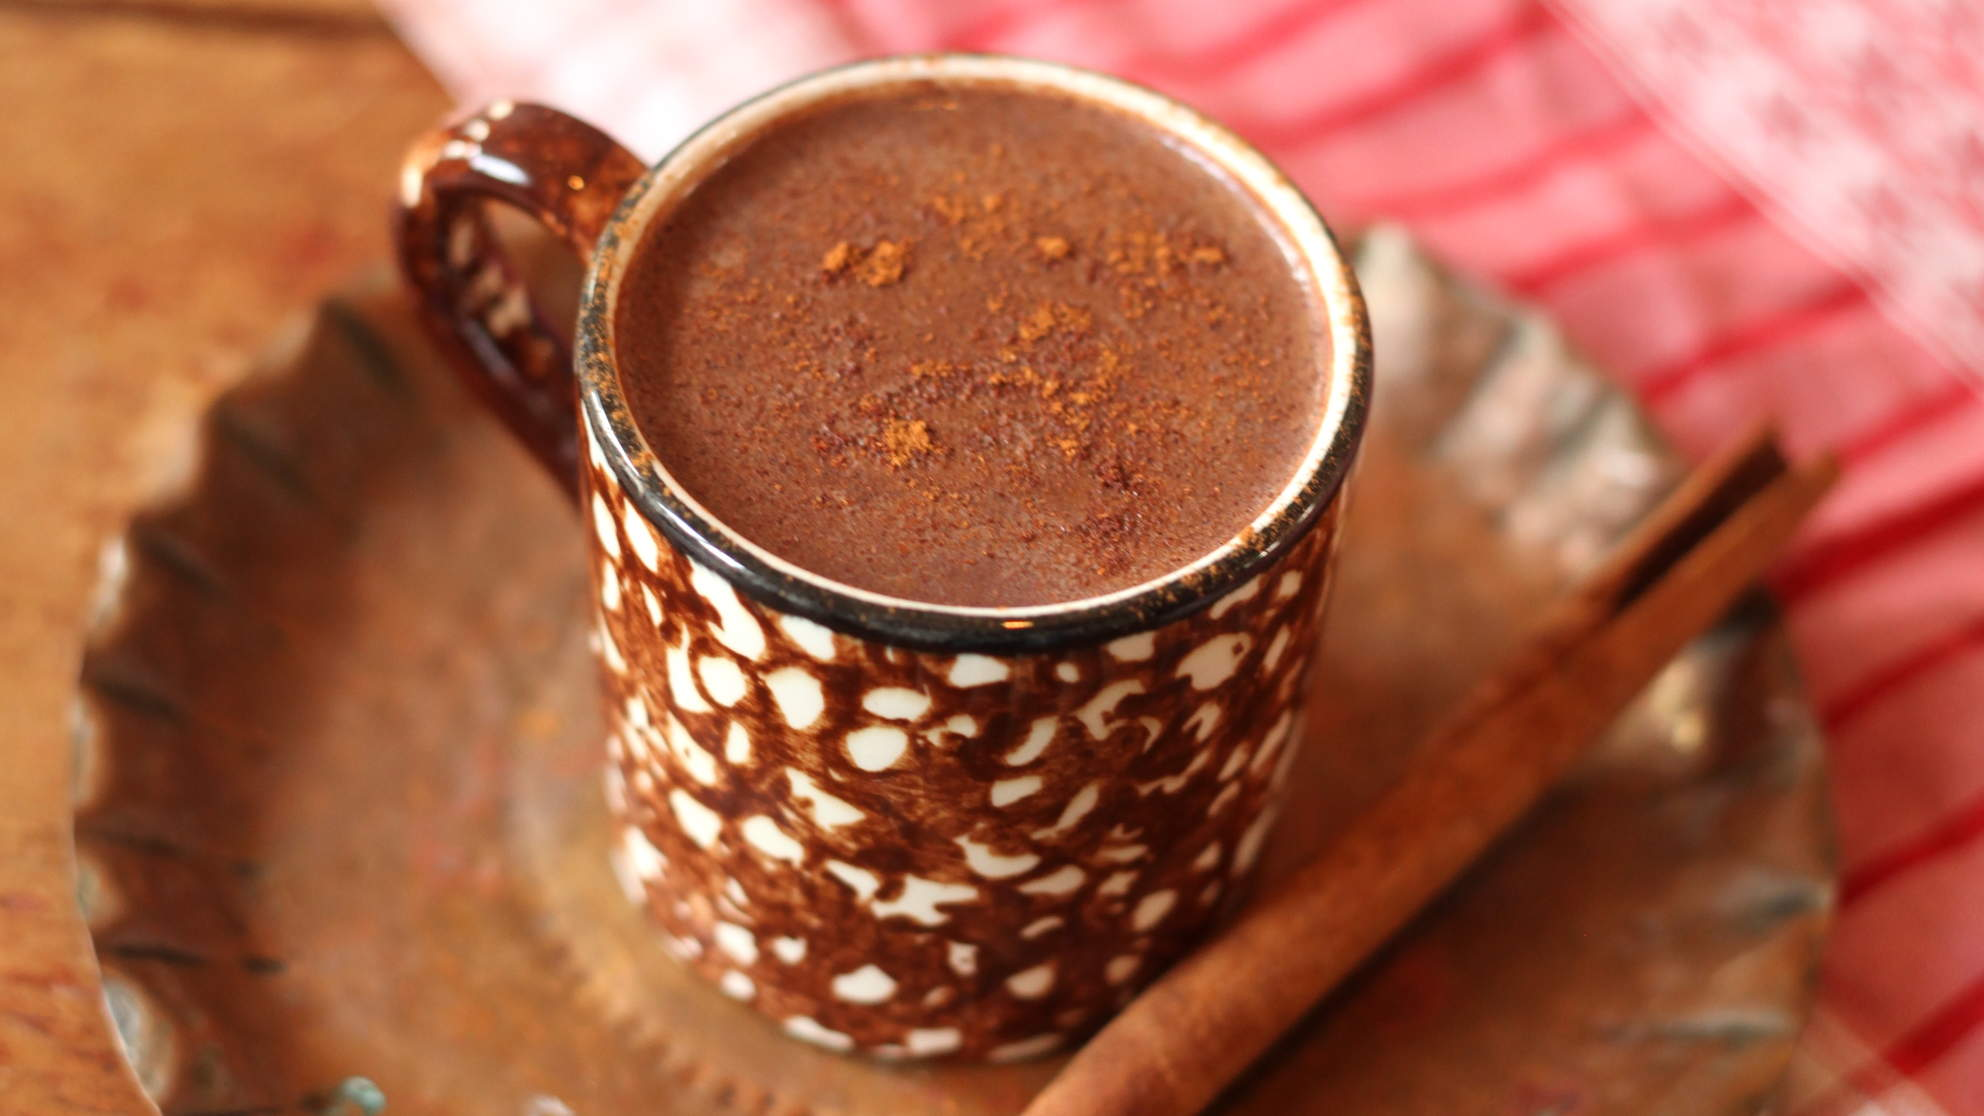 3 Ways to Warm Up With Spiked Hot Chocolate